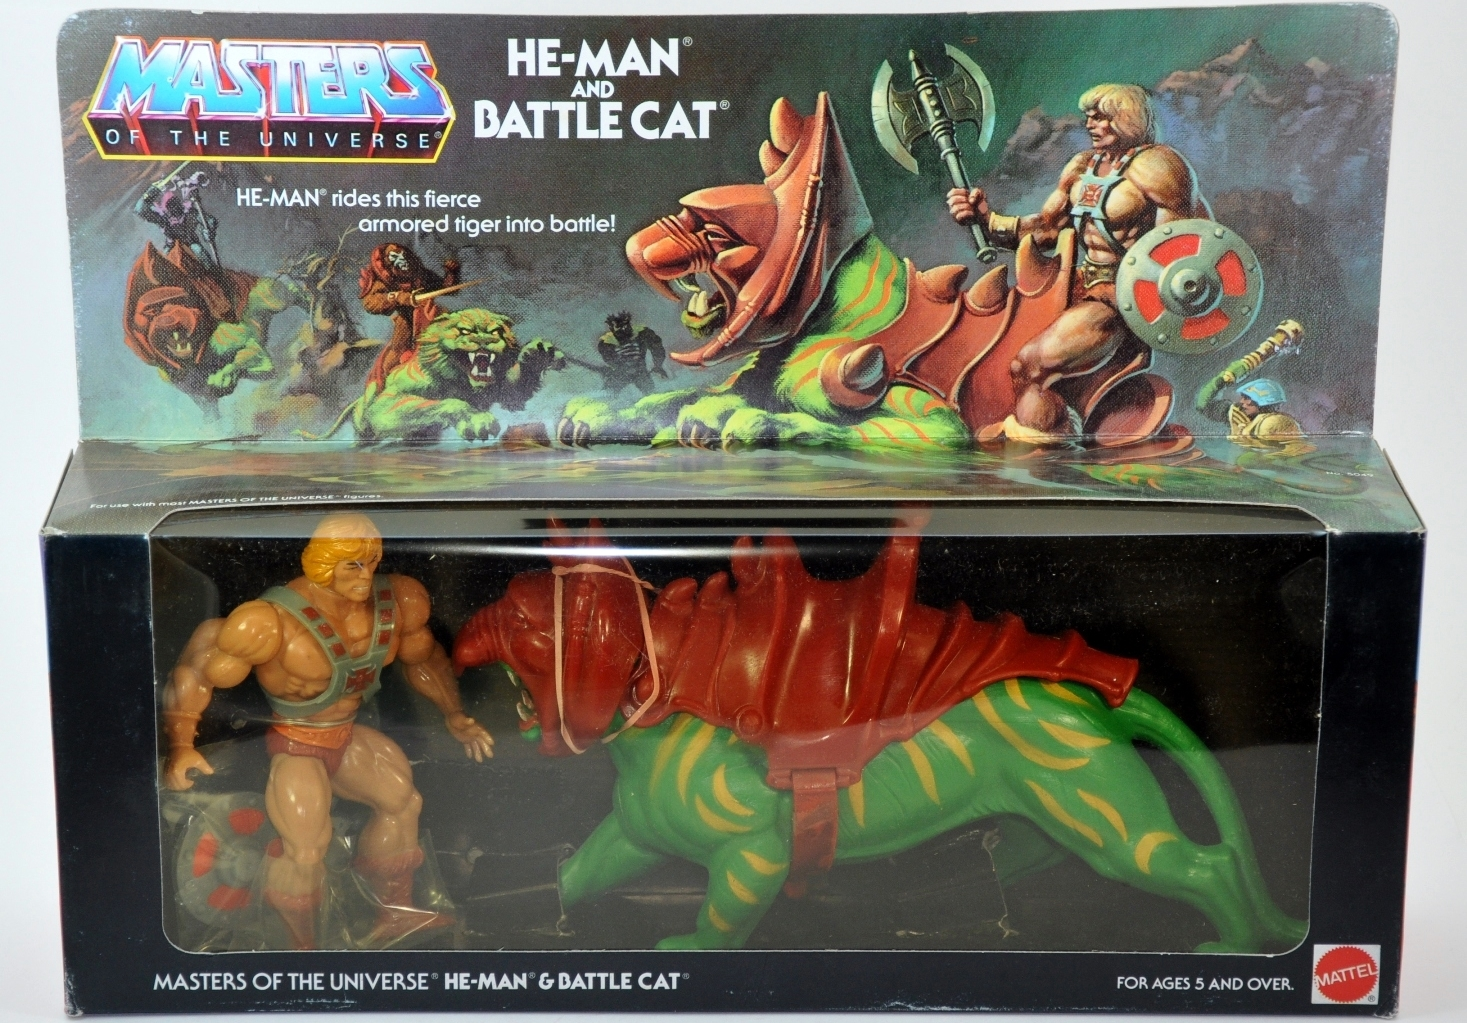 2 29 22 He-Man Facts Every 80s Child Should Know